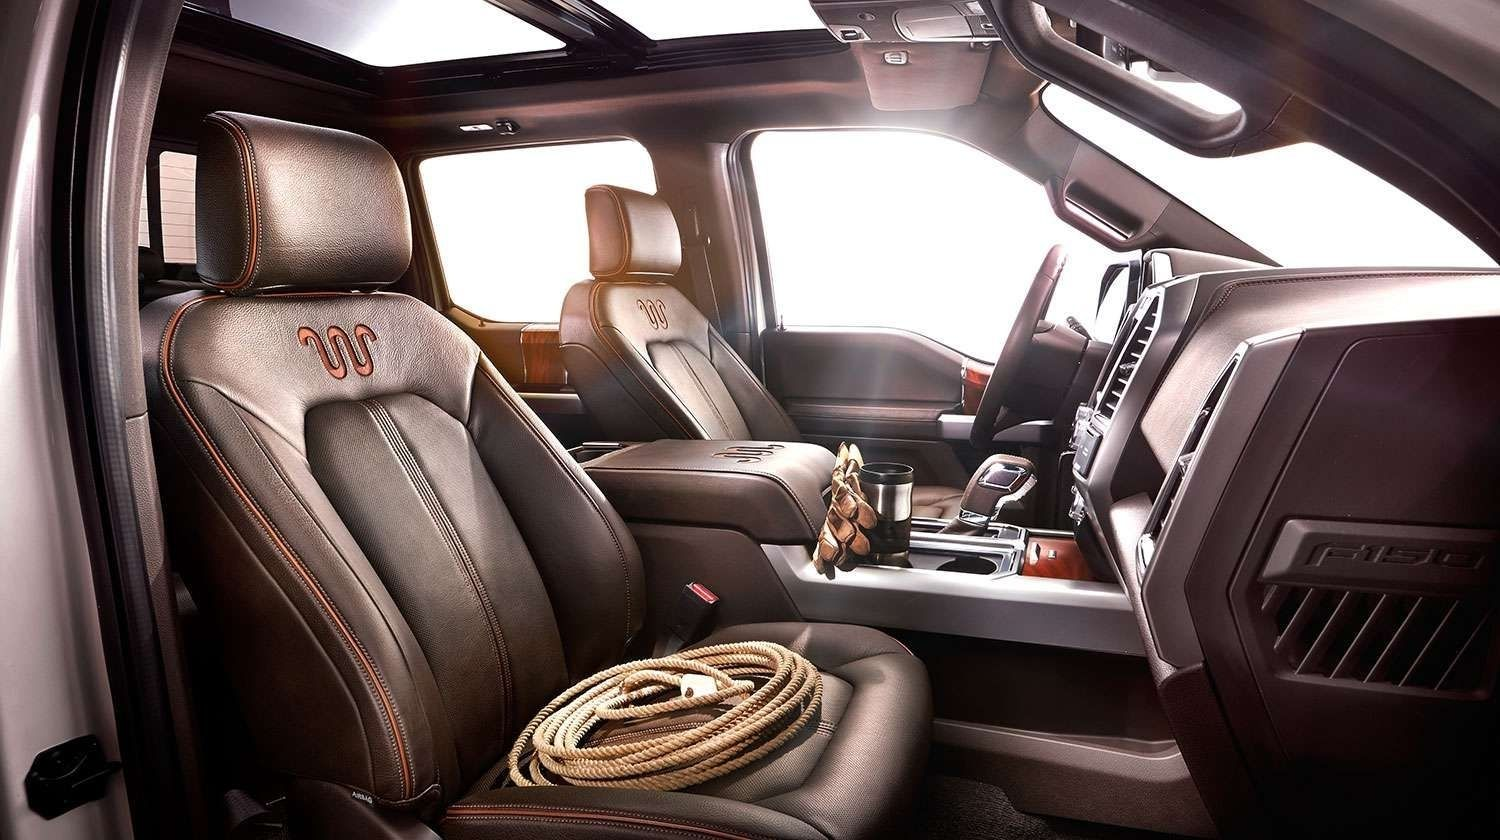 12 Insanely Beautiful 2019 Ford F 150 King Ranch Interior King Ranch Interior Ford F150 King Ranch